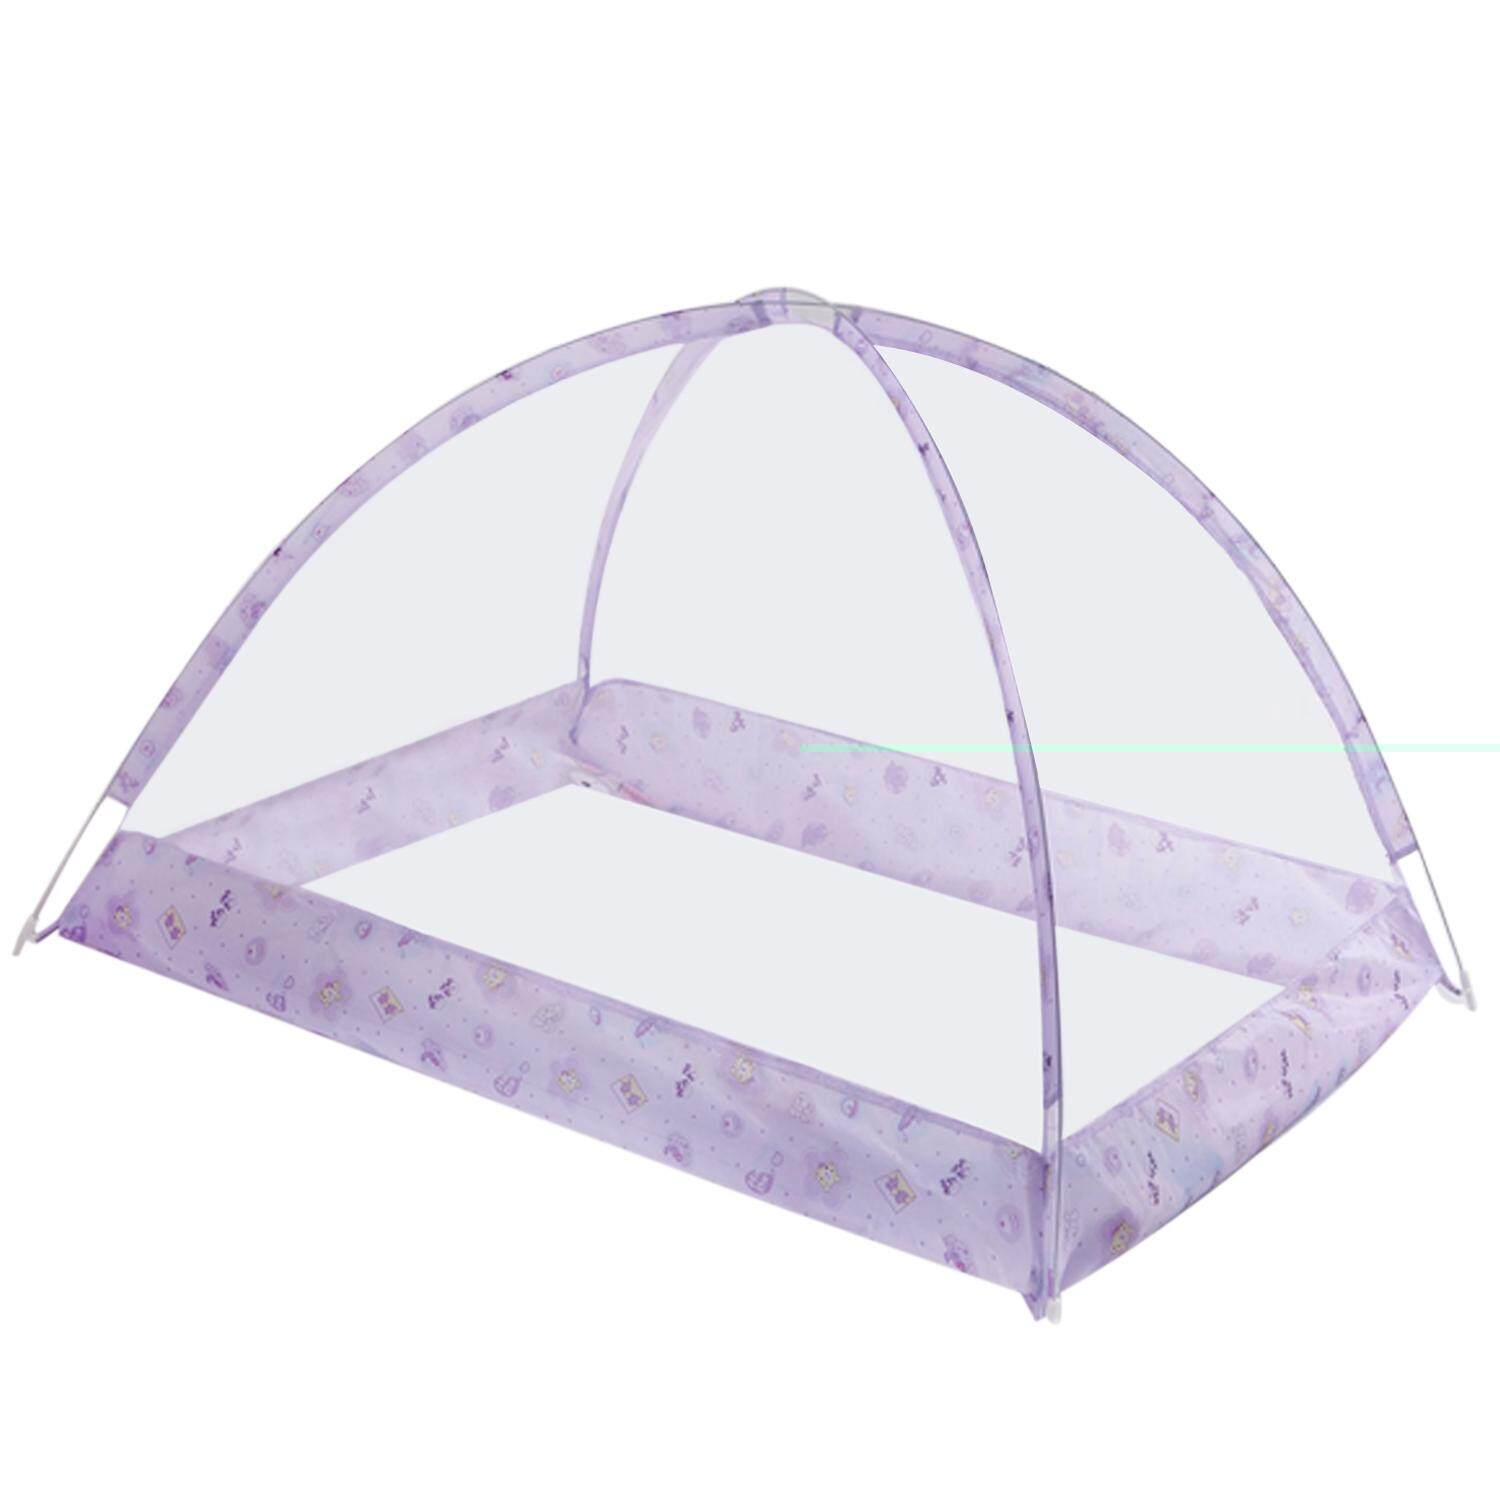 Baby Bed Mosquito Net Portable Folding Summer Sleeping Nursery Bedroom Mosquito Netting Crib Tent For Toddler Children Kids By Elek.